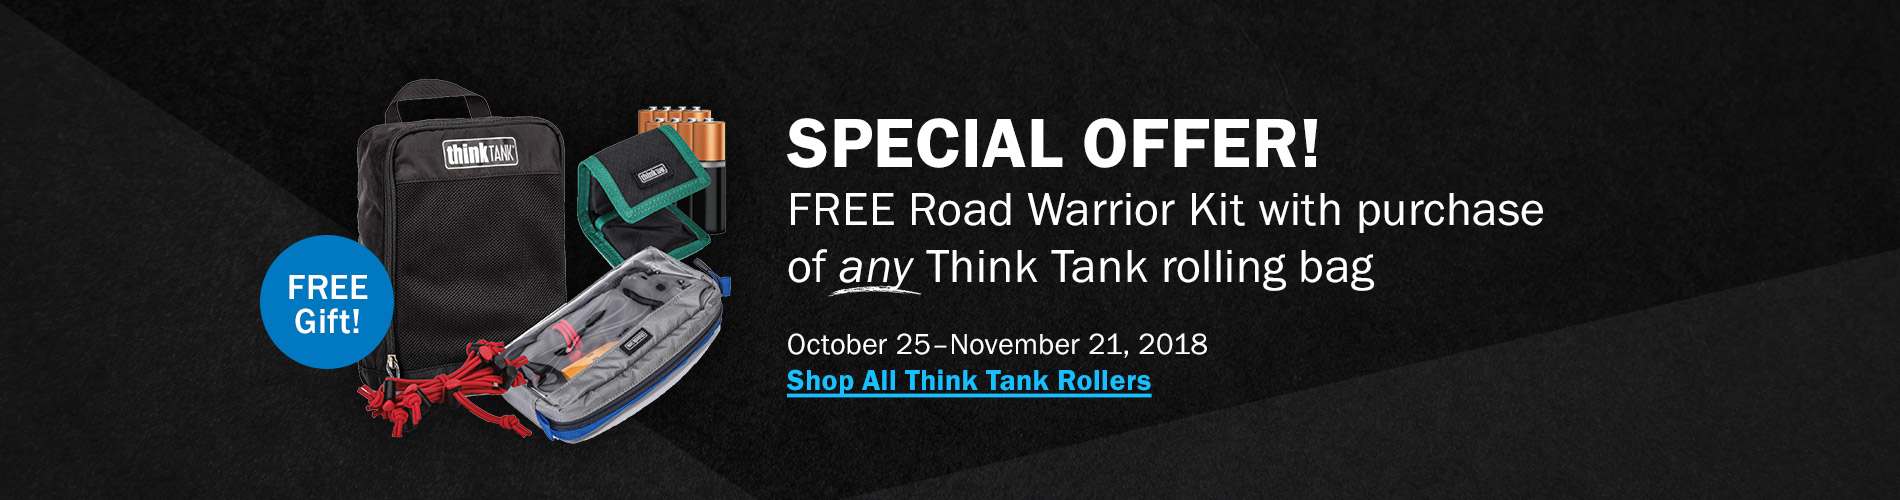 Special Offer! Free Road Warrior Kit with purchase of any Think Tank rolling bag. October 25-November 21, 2018. Shop All Think Tank Rollers >